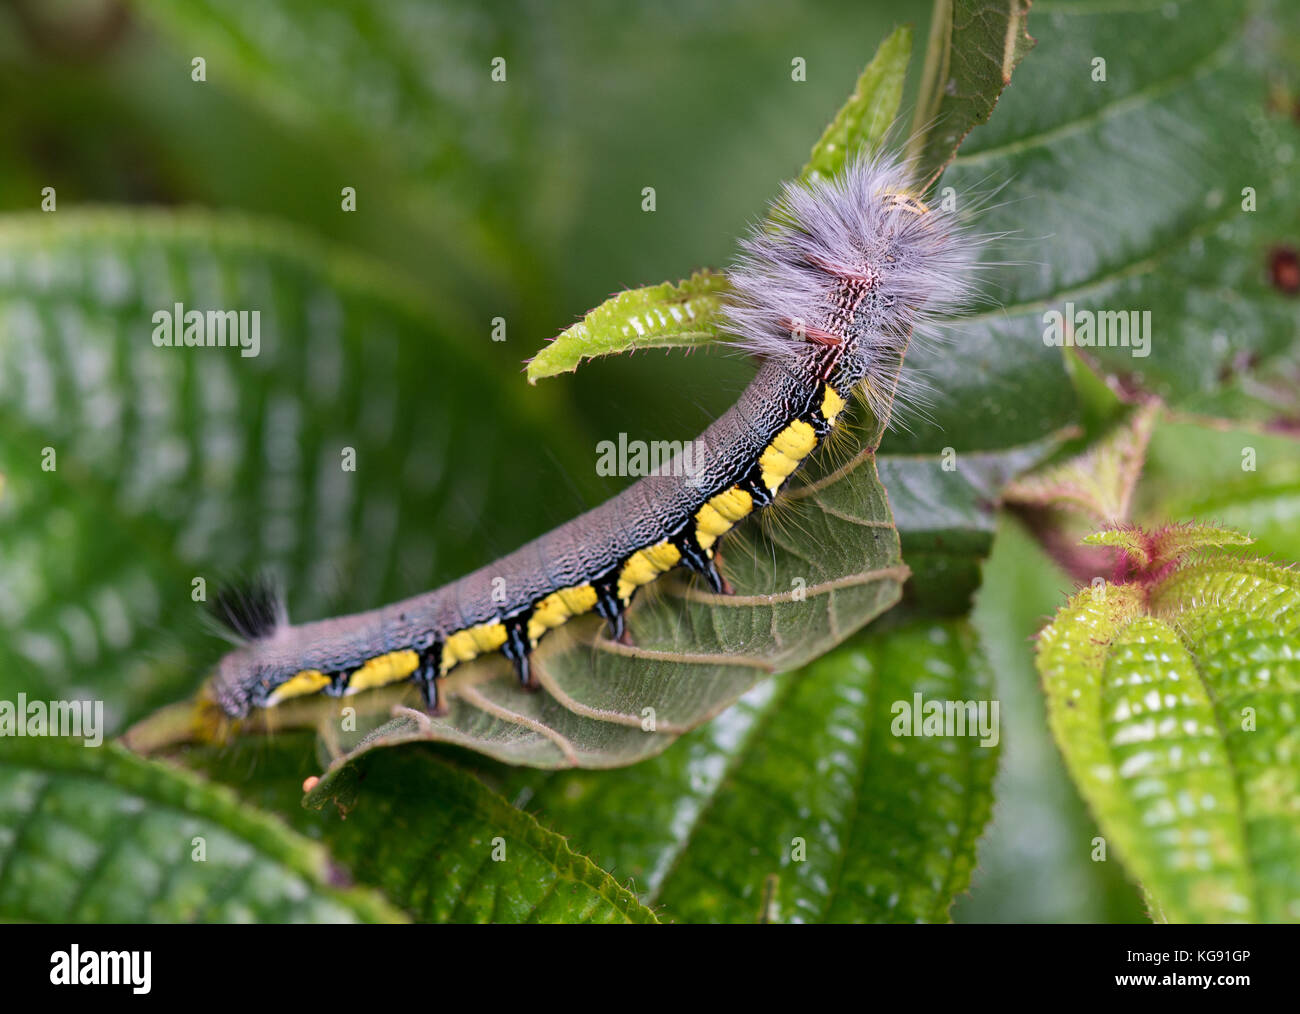 Colorful hairy caterpillar on green leaves. Madagascar, Africa. - Stock Image